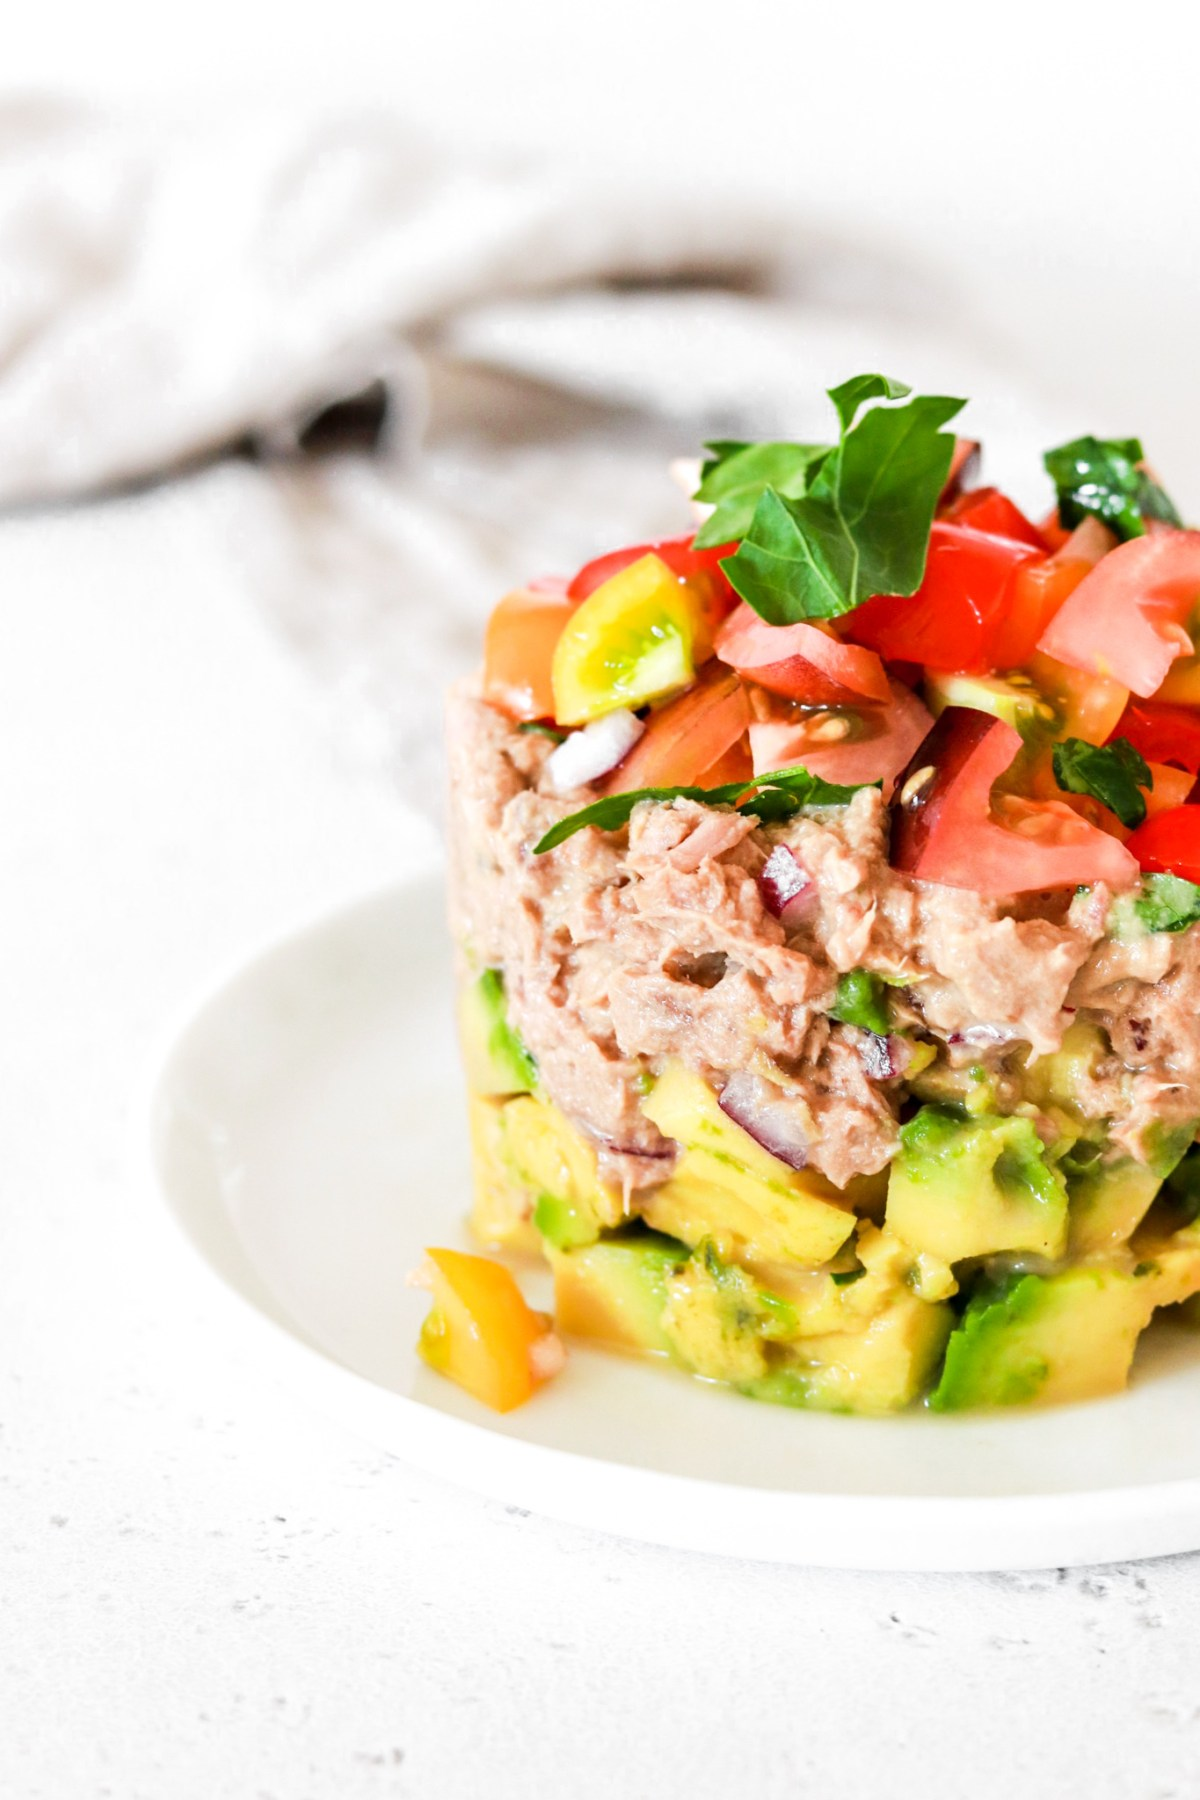 Canned Tuna Tartare (Gluten, Grain, Dairy, Oil Free & Low Carb) From Front Close Up